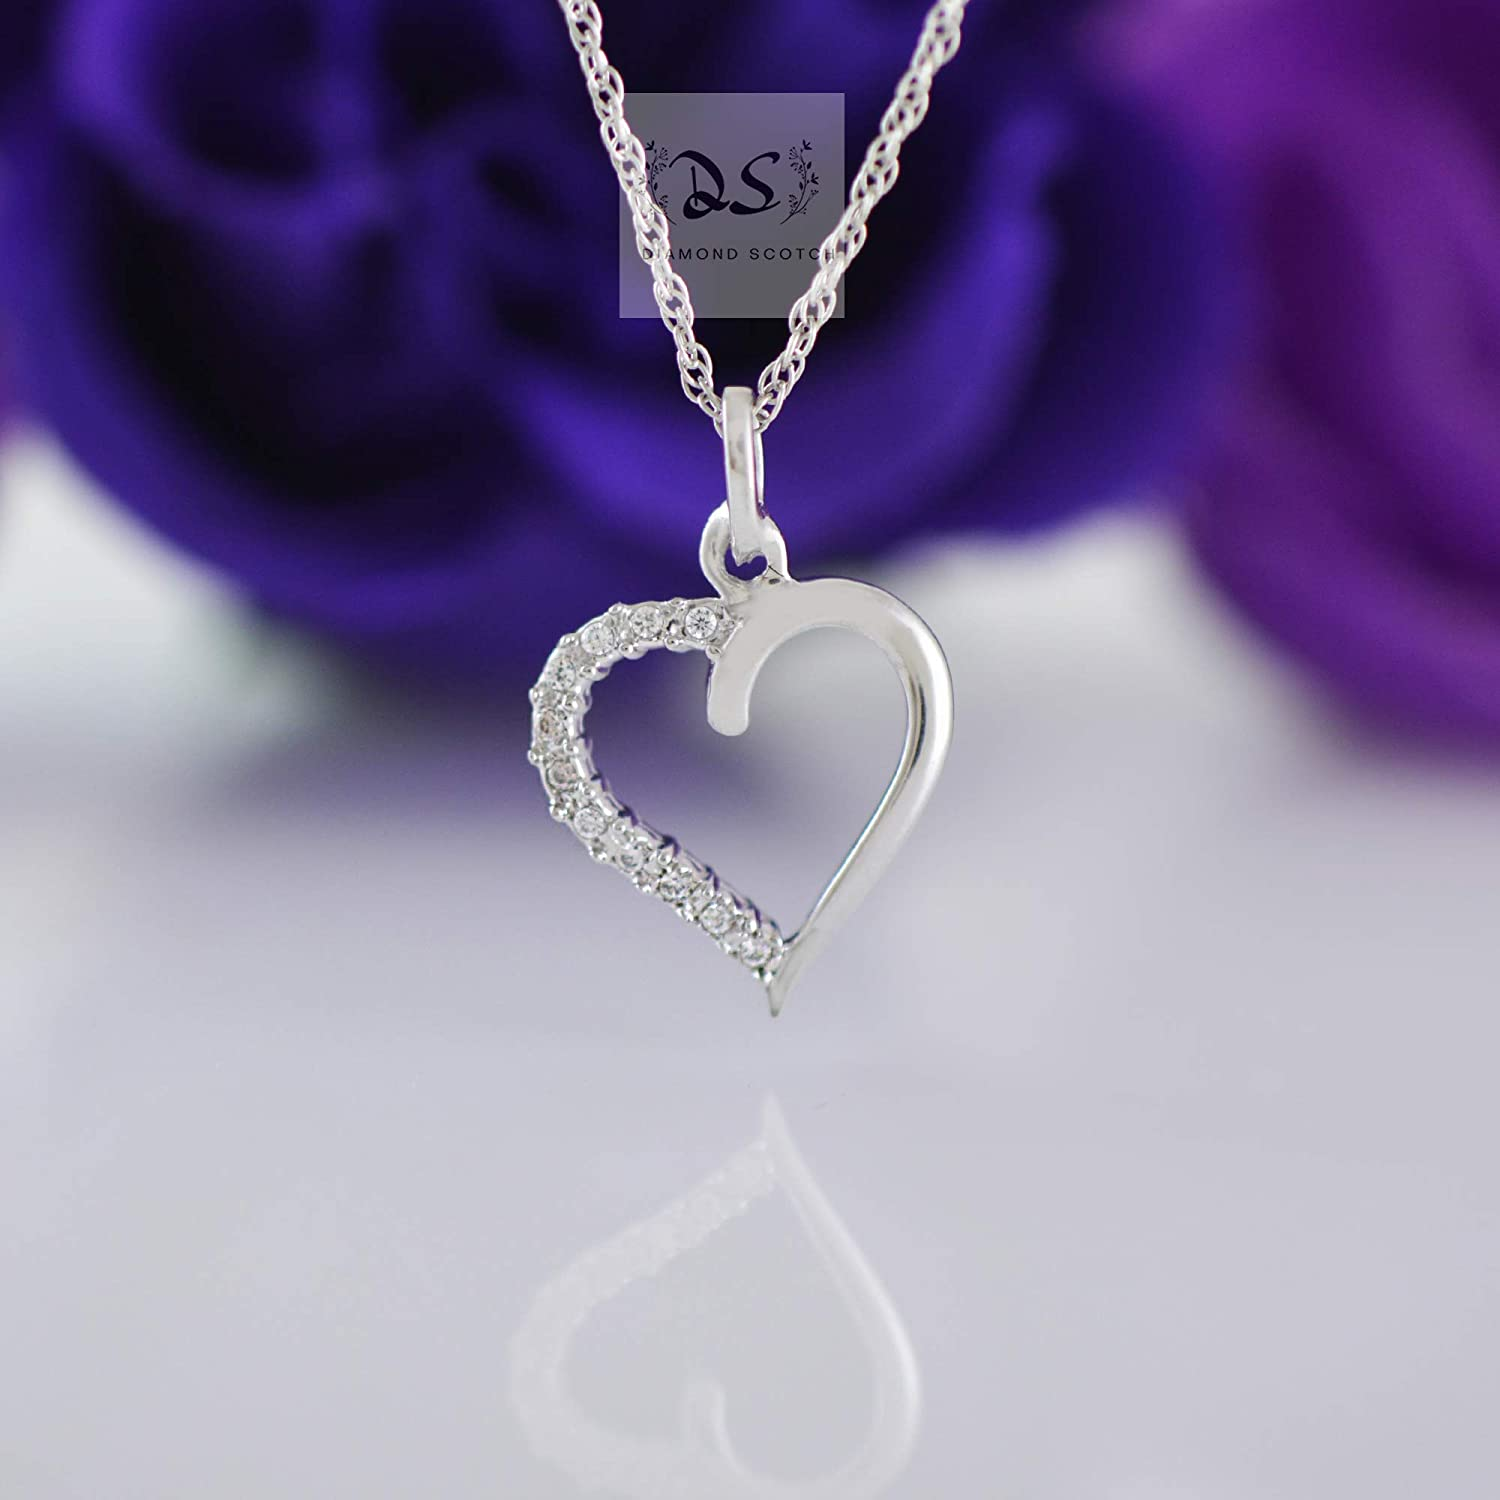 Jewelry for Women Girls 14k White Gold Plated Diamond Scotch White Cubic Zirconia Solitaire Cross Heart Pendant Necklace Religious Necklace Birthday Gifts